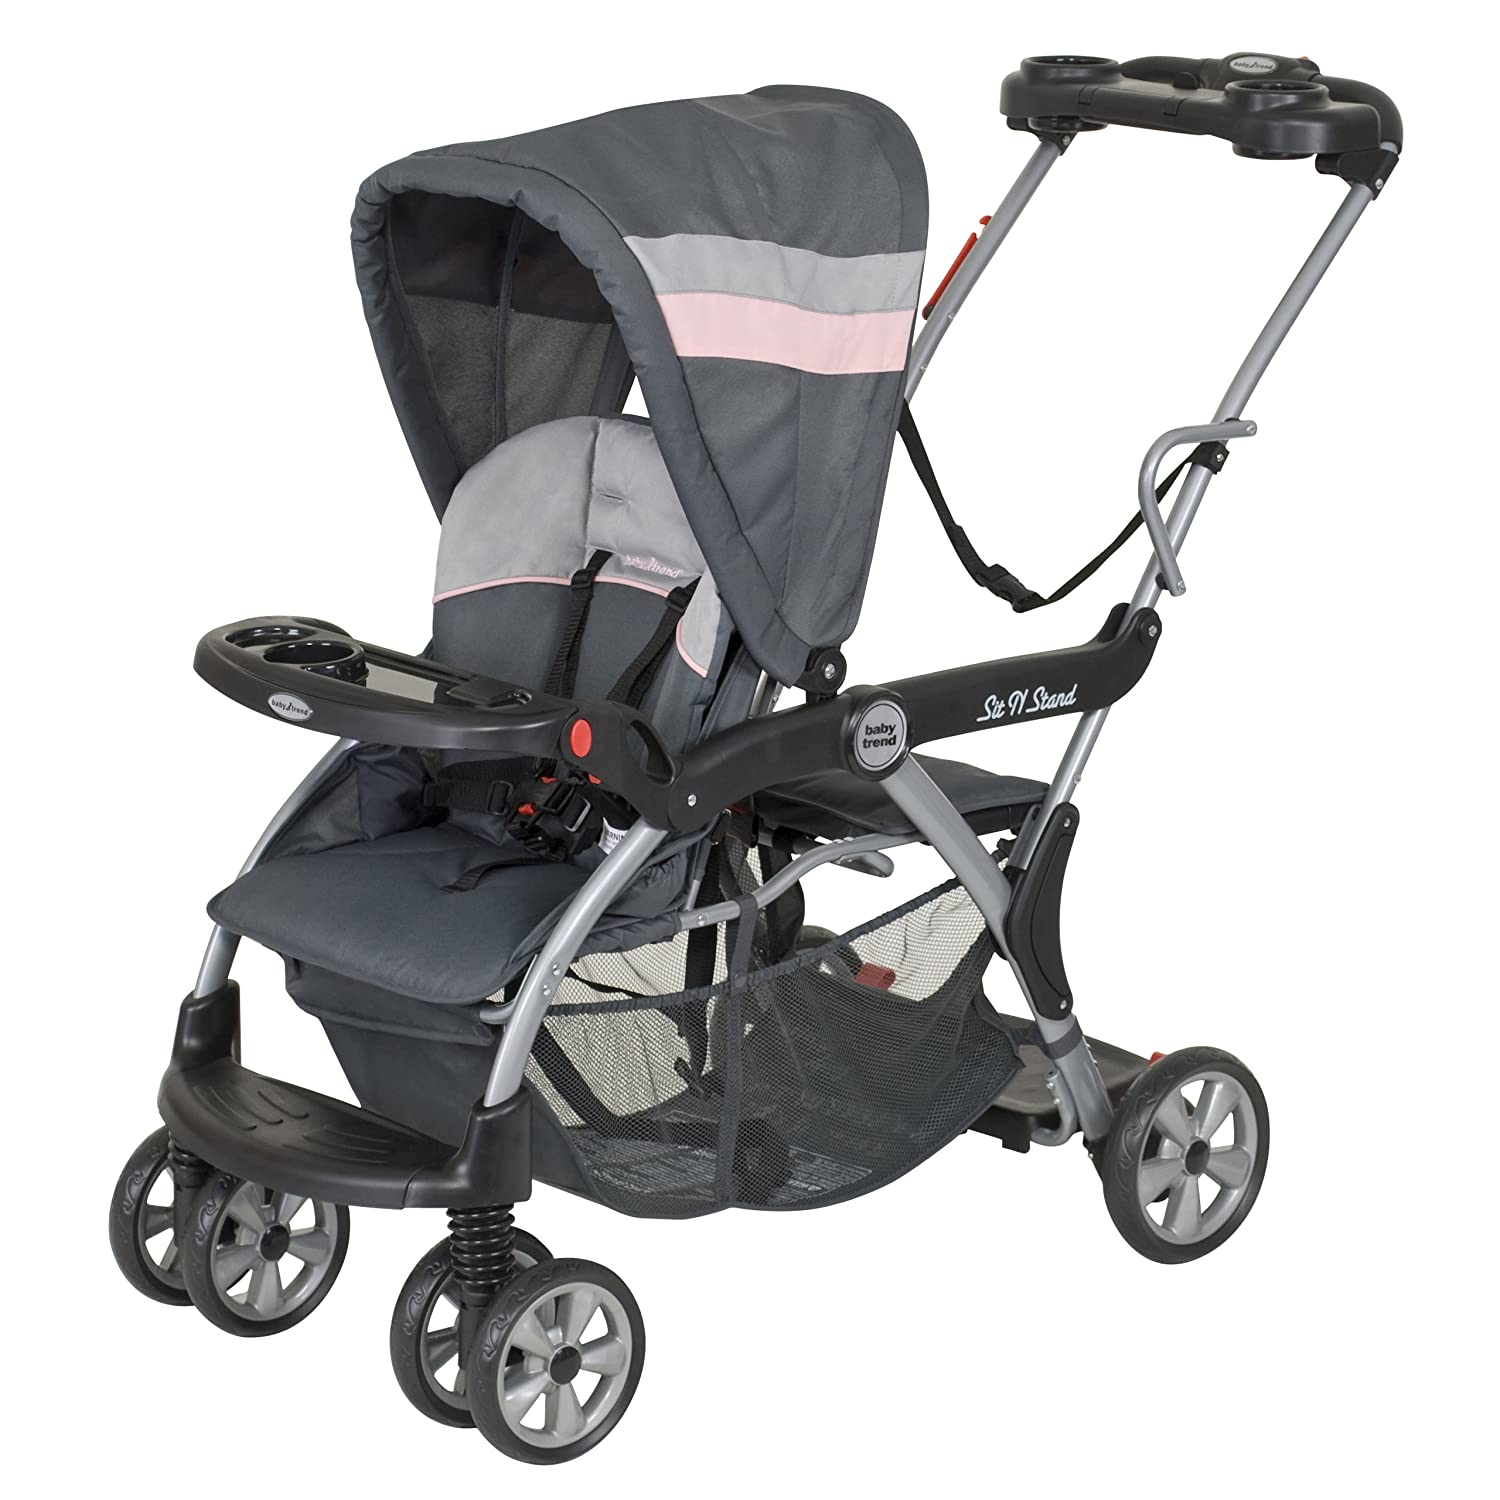 Amazon Baby Trend Sit N Stand Deluxe Stroller Quartz Discontinued by Manufacturer Standard Baby Strollers Baby